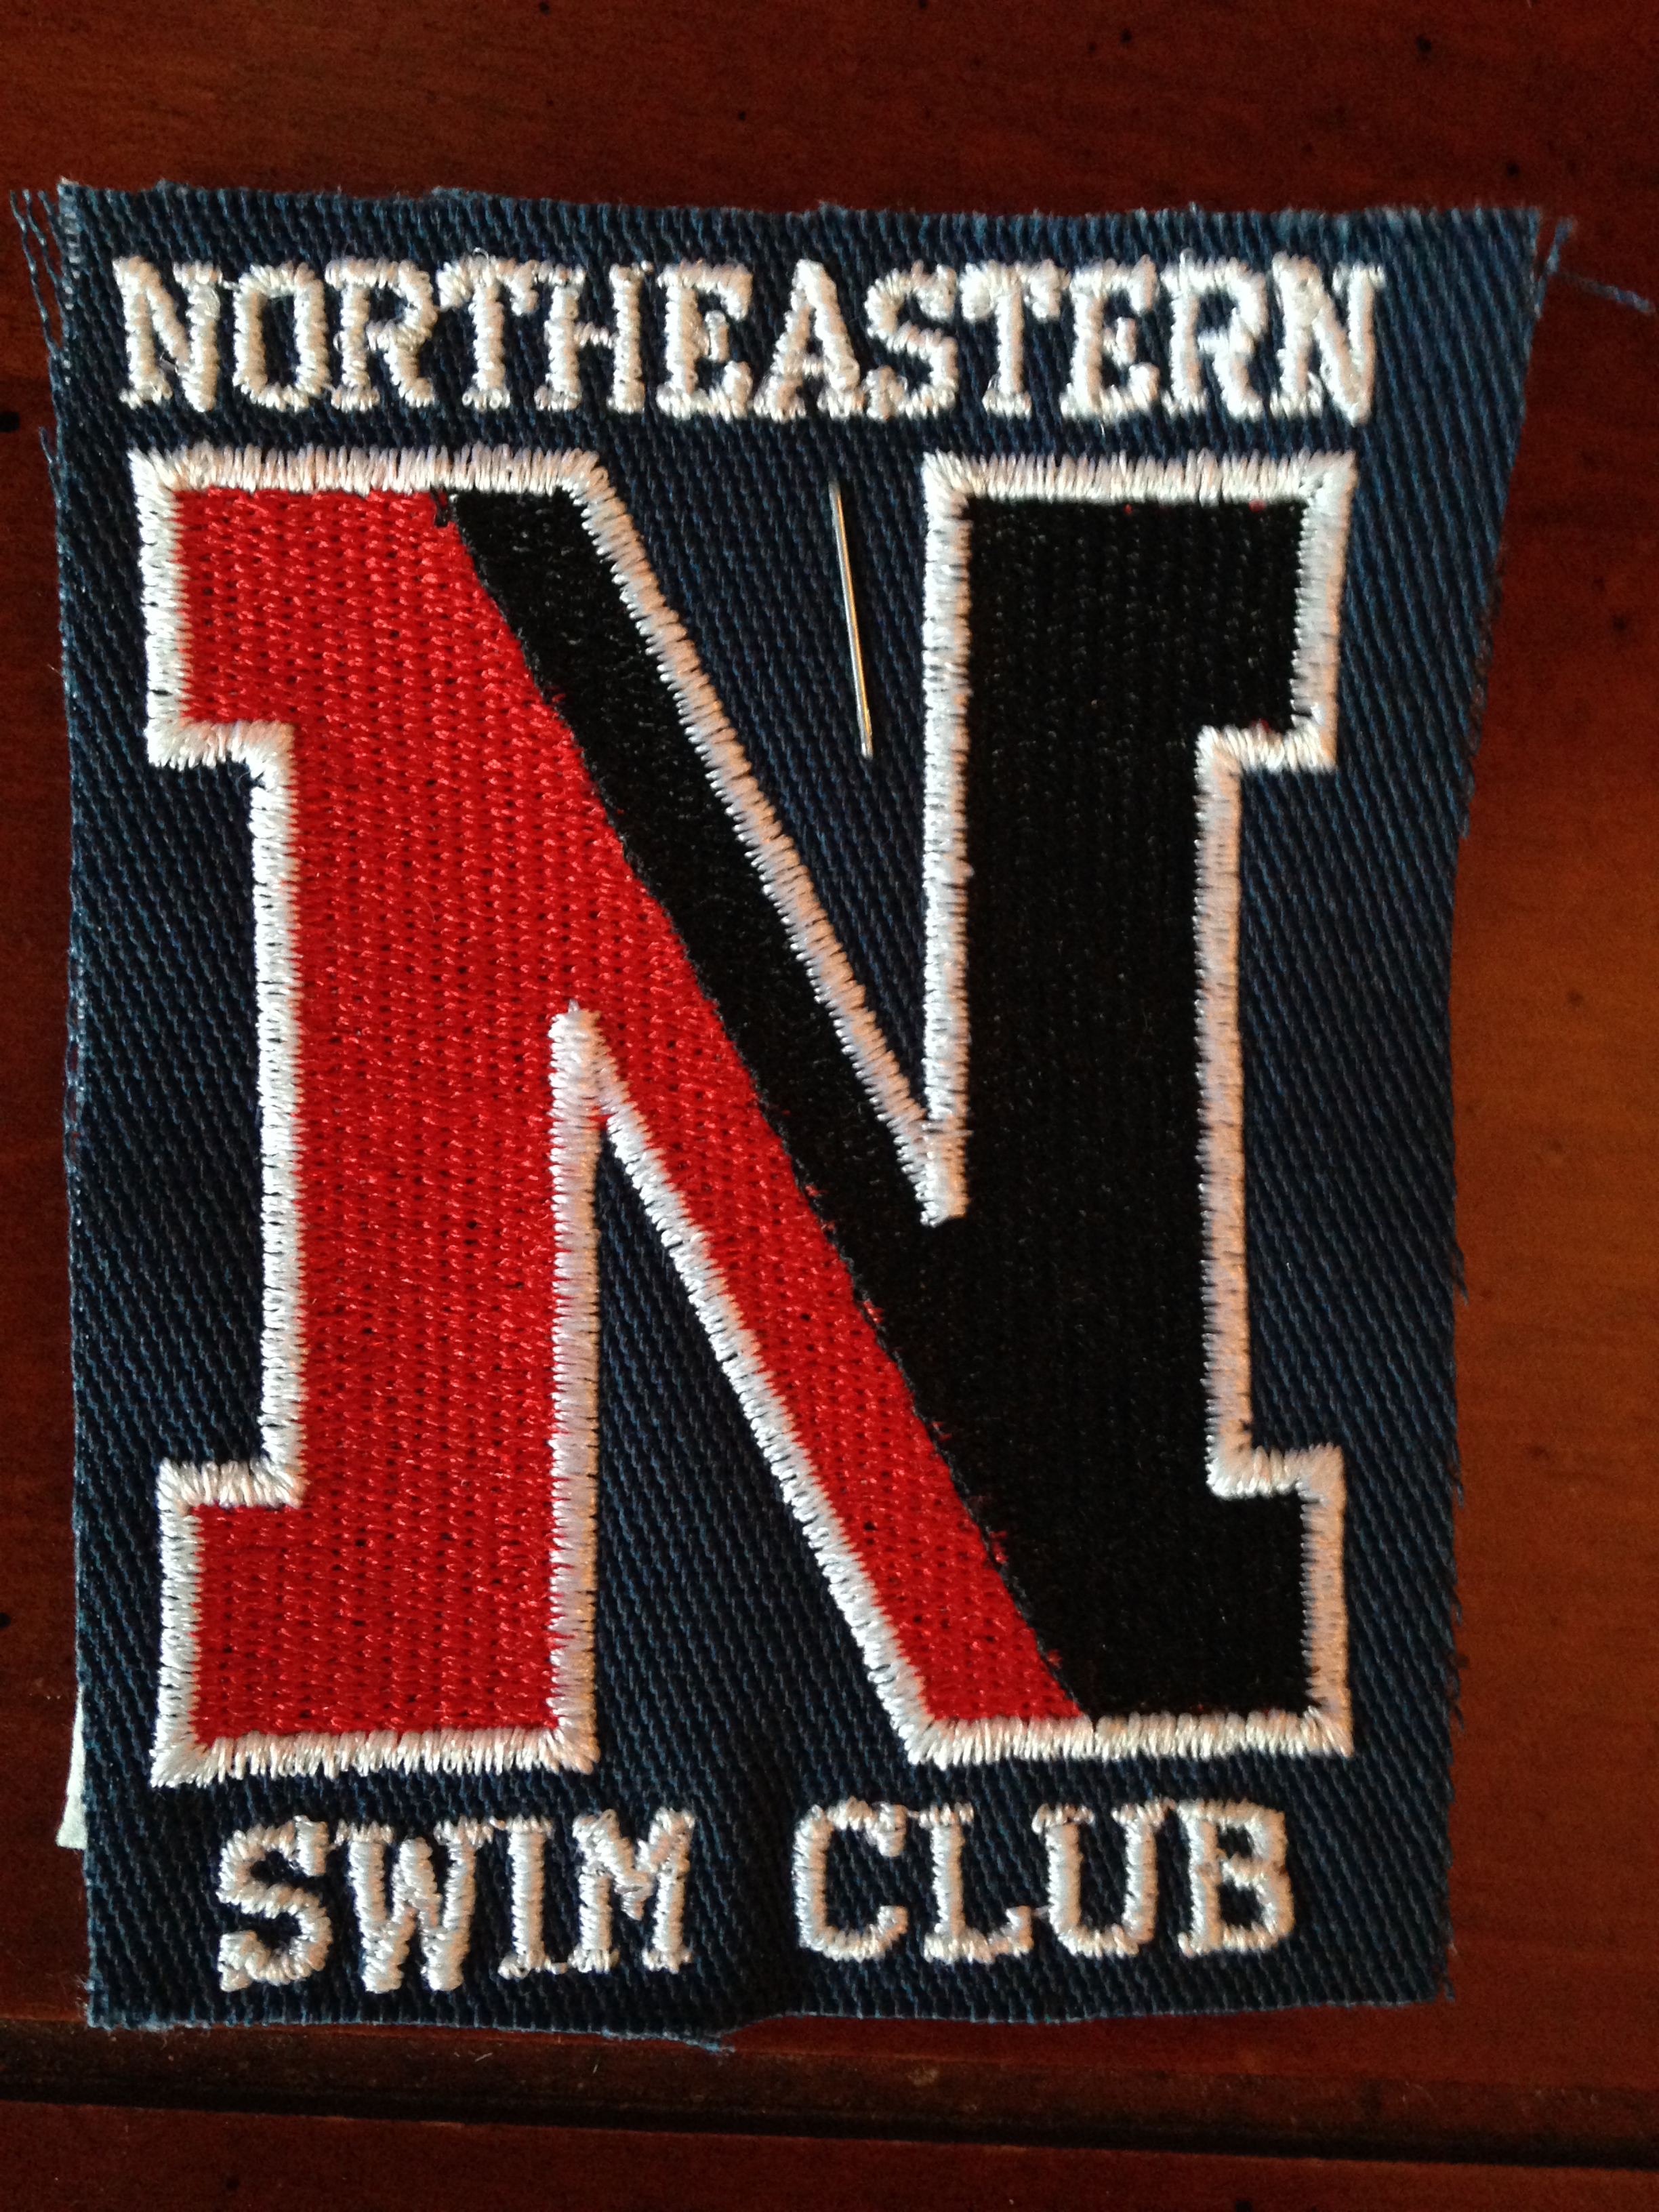 Northeastern Jacket logo